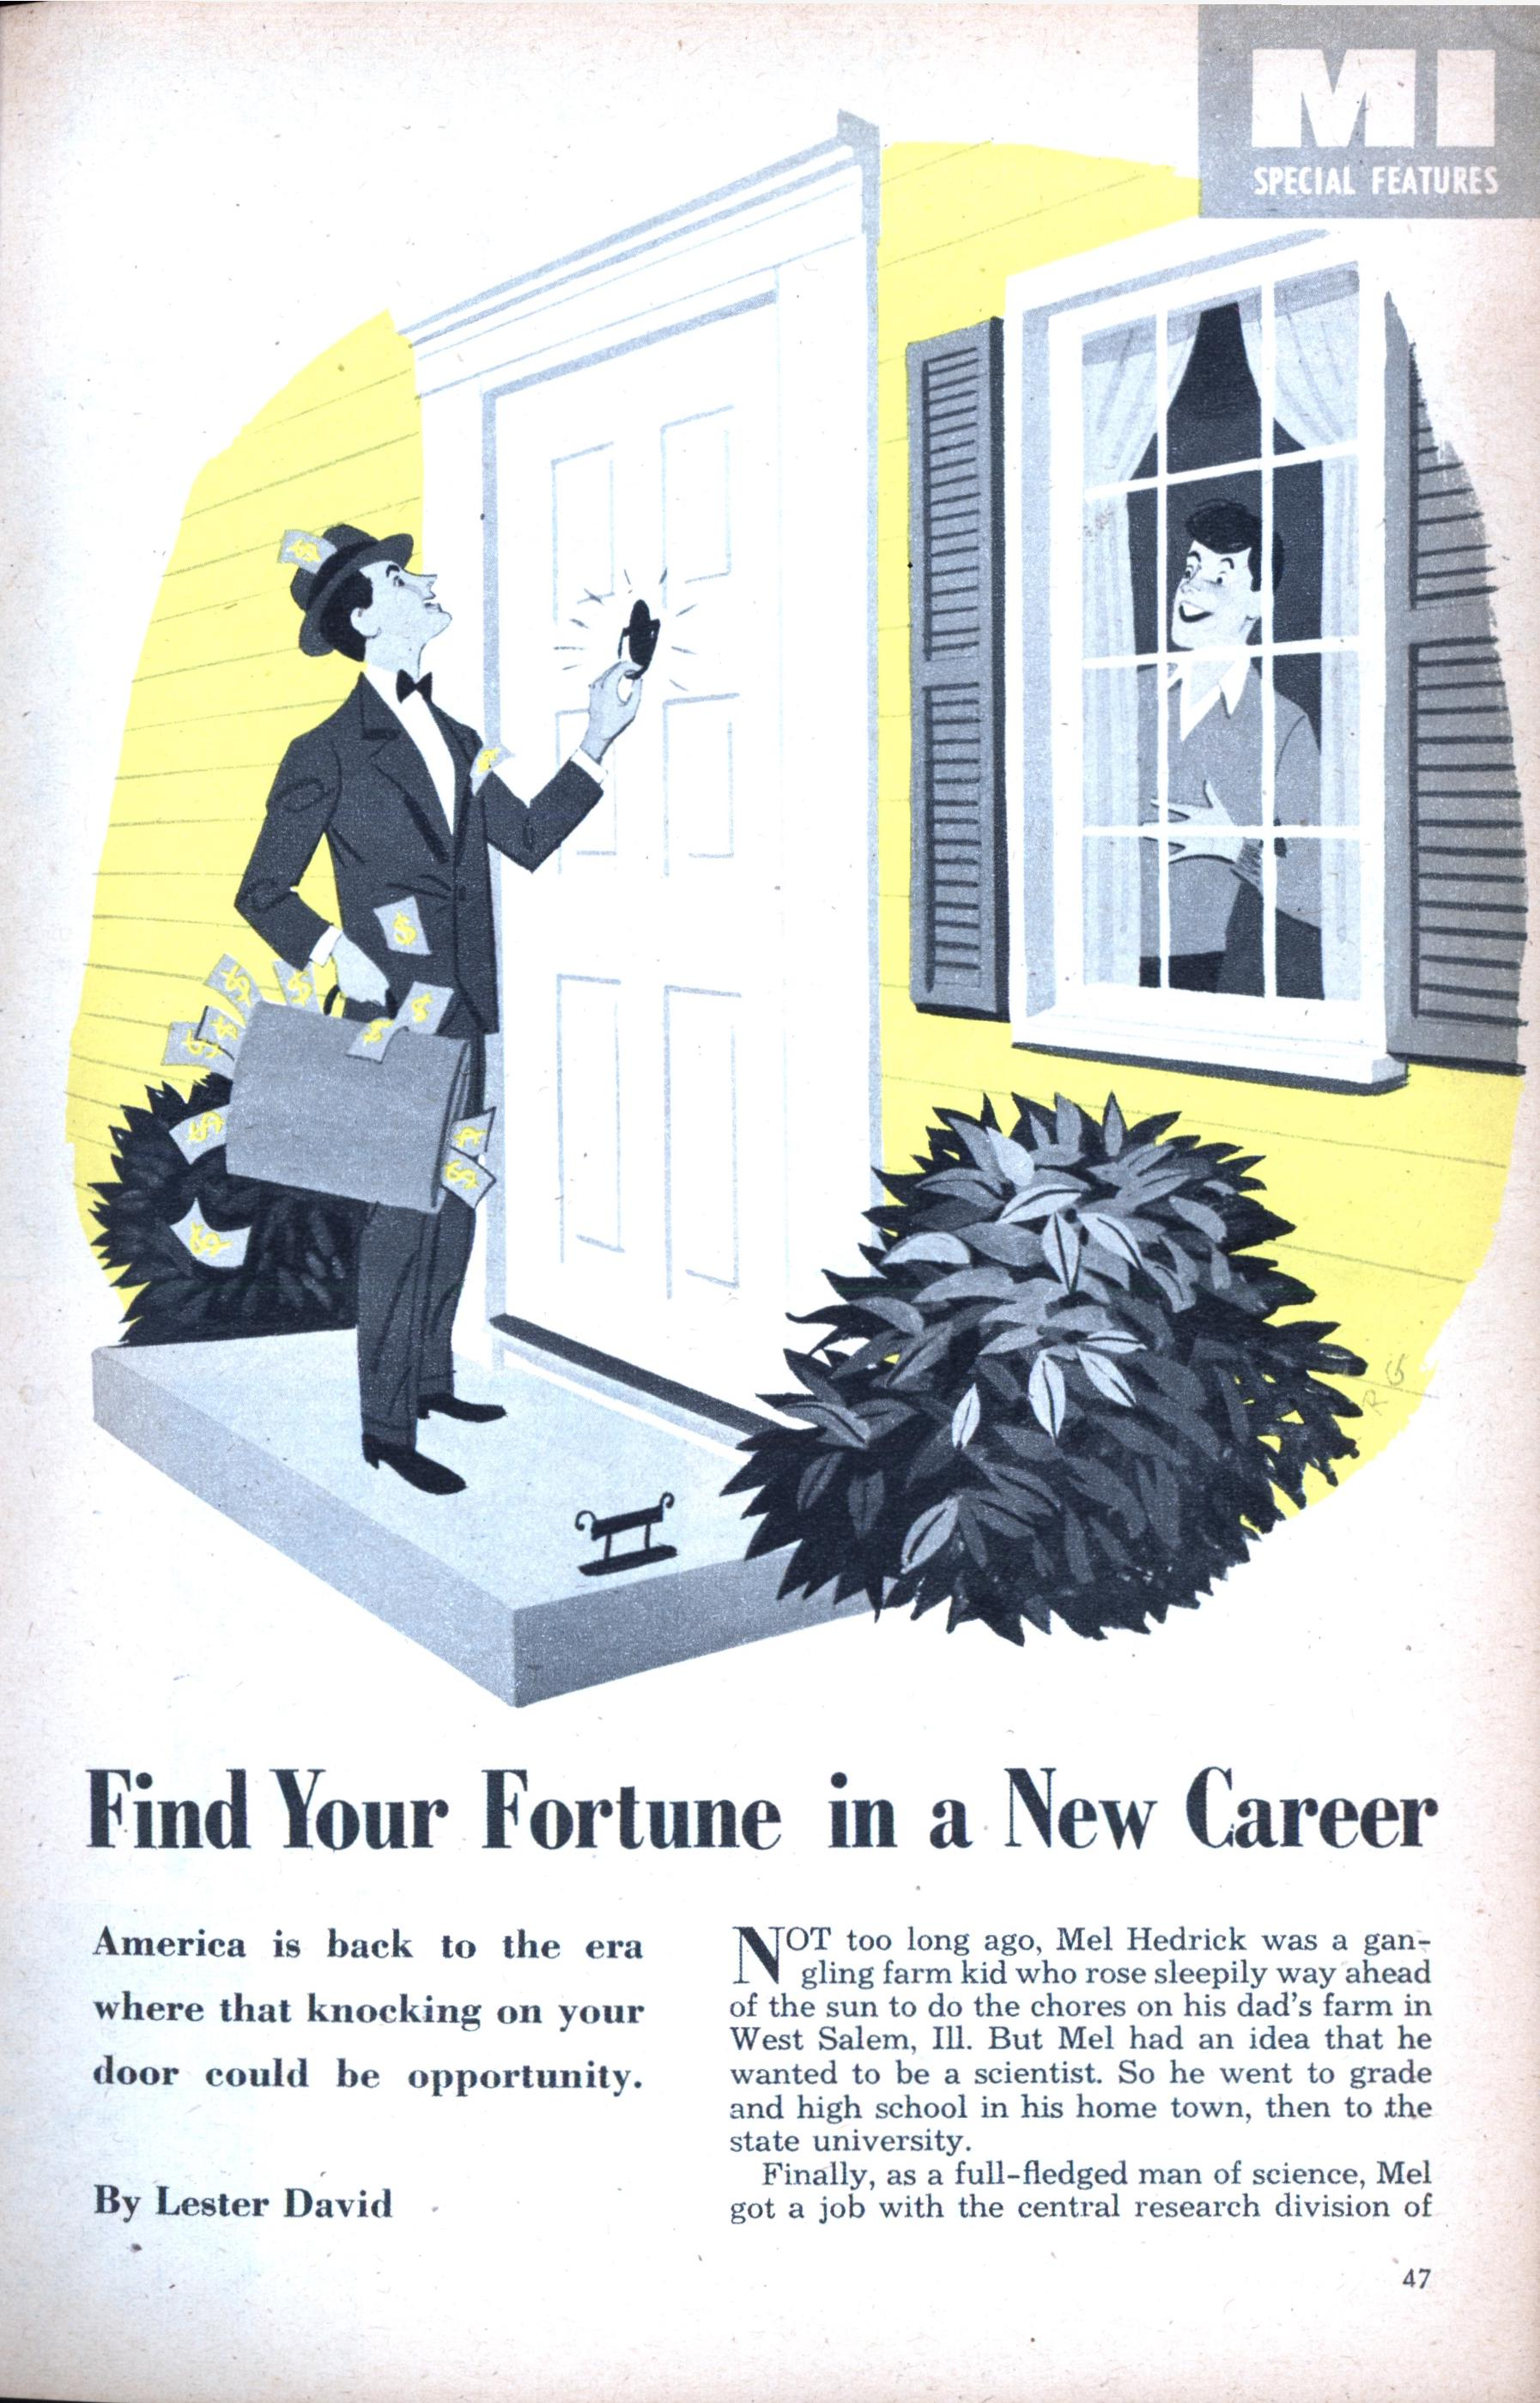 finding a new career